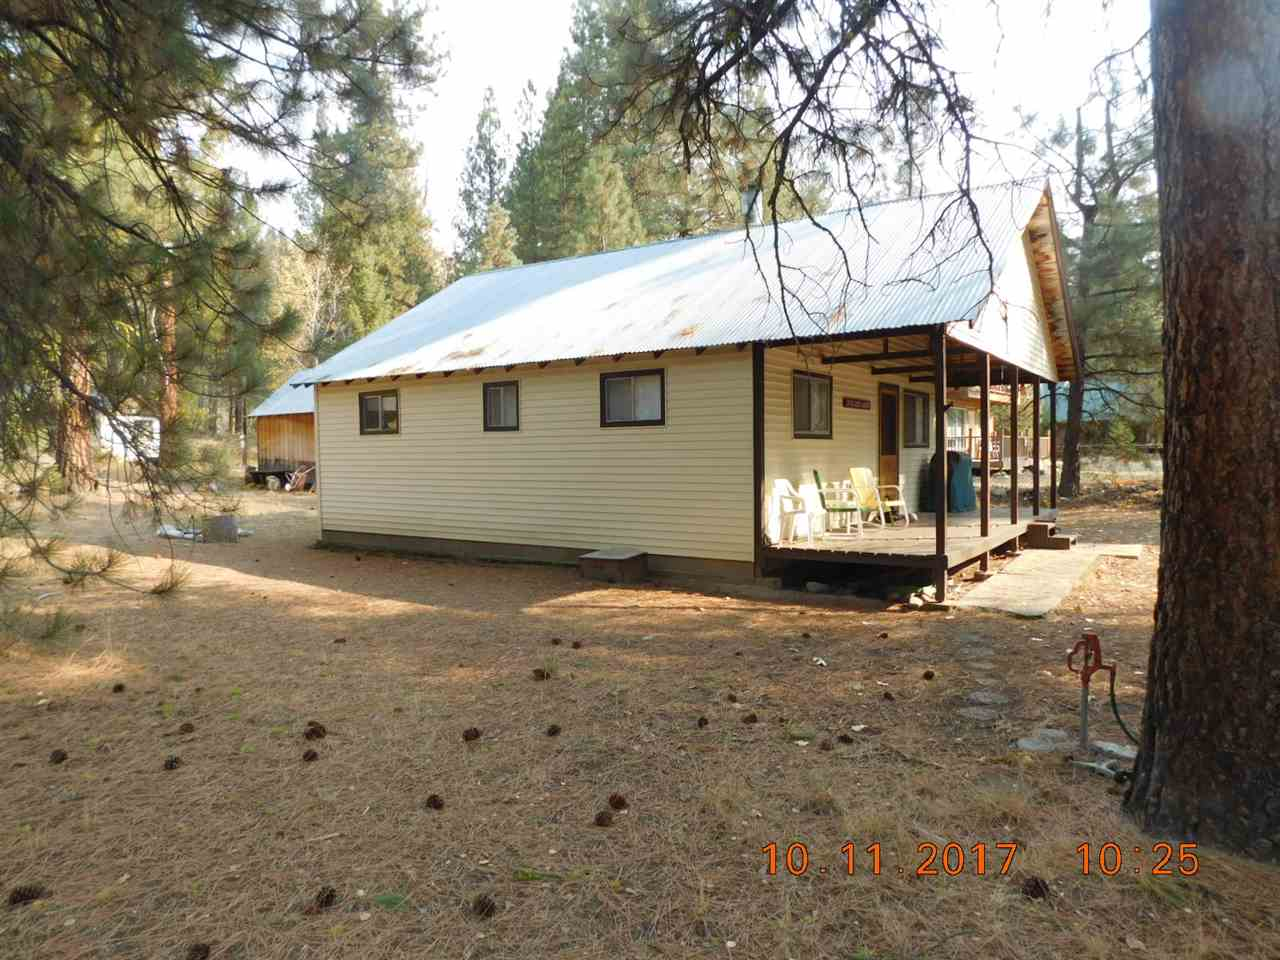 Single Family Home for Sale at 1596 E River Drive 1596 E River Drive Featherville, Idaho 83647